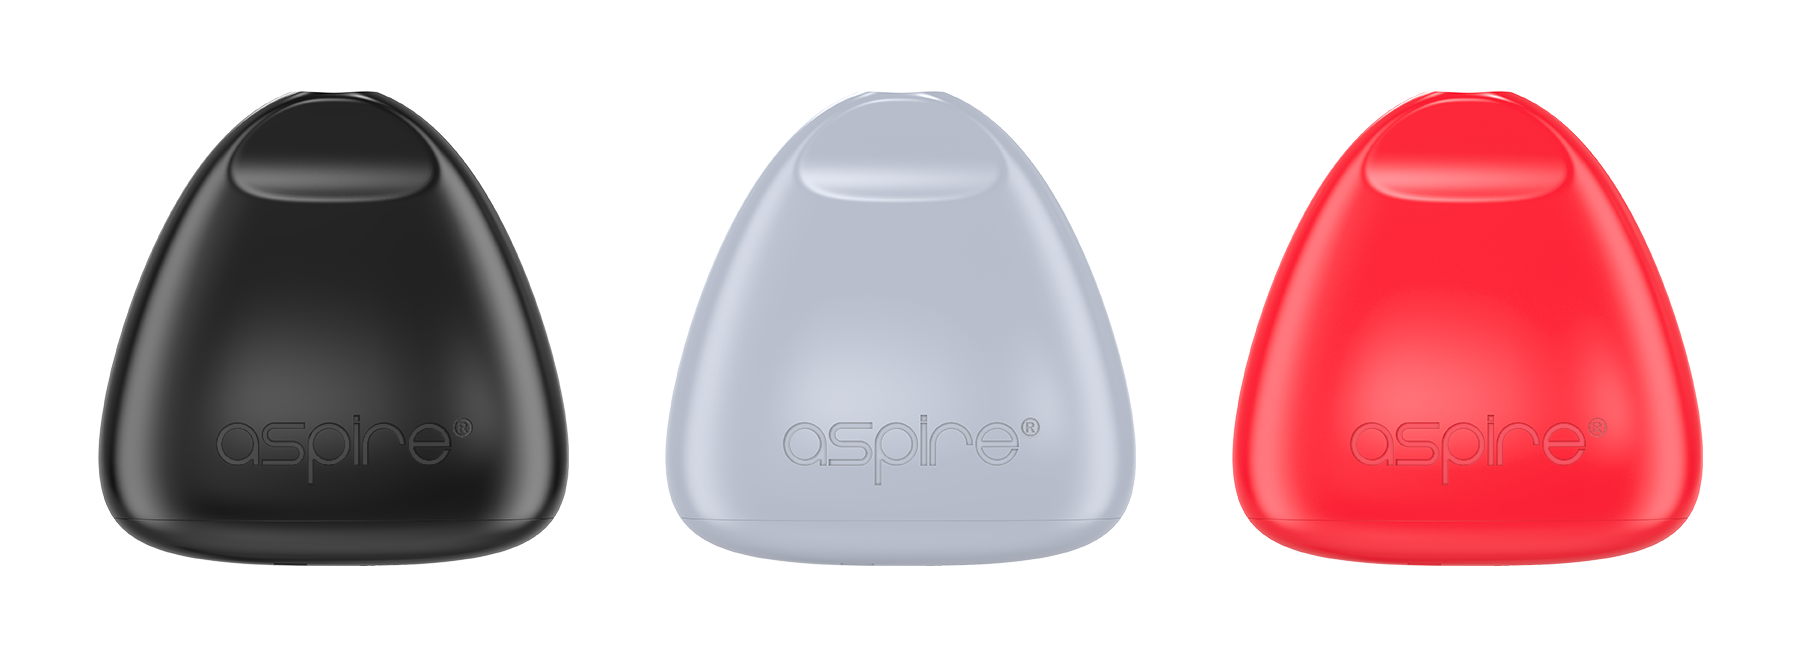 Aspire Mynus: The Ultimate Stealth Vaping Device